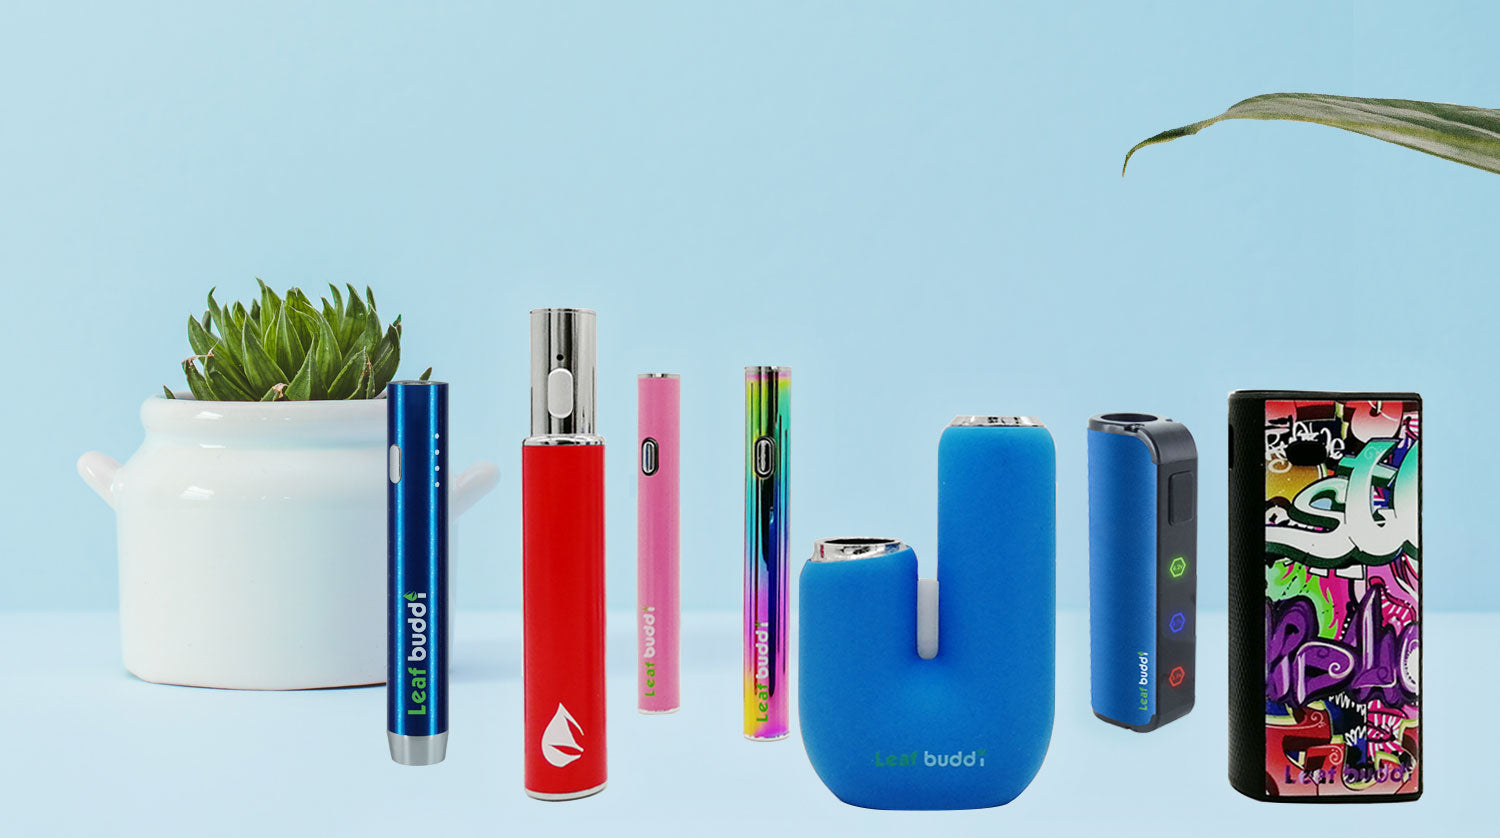 How to choose a Vaporizer Pen/Box Mod?